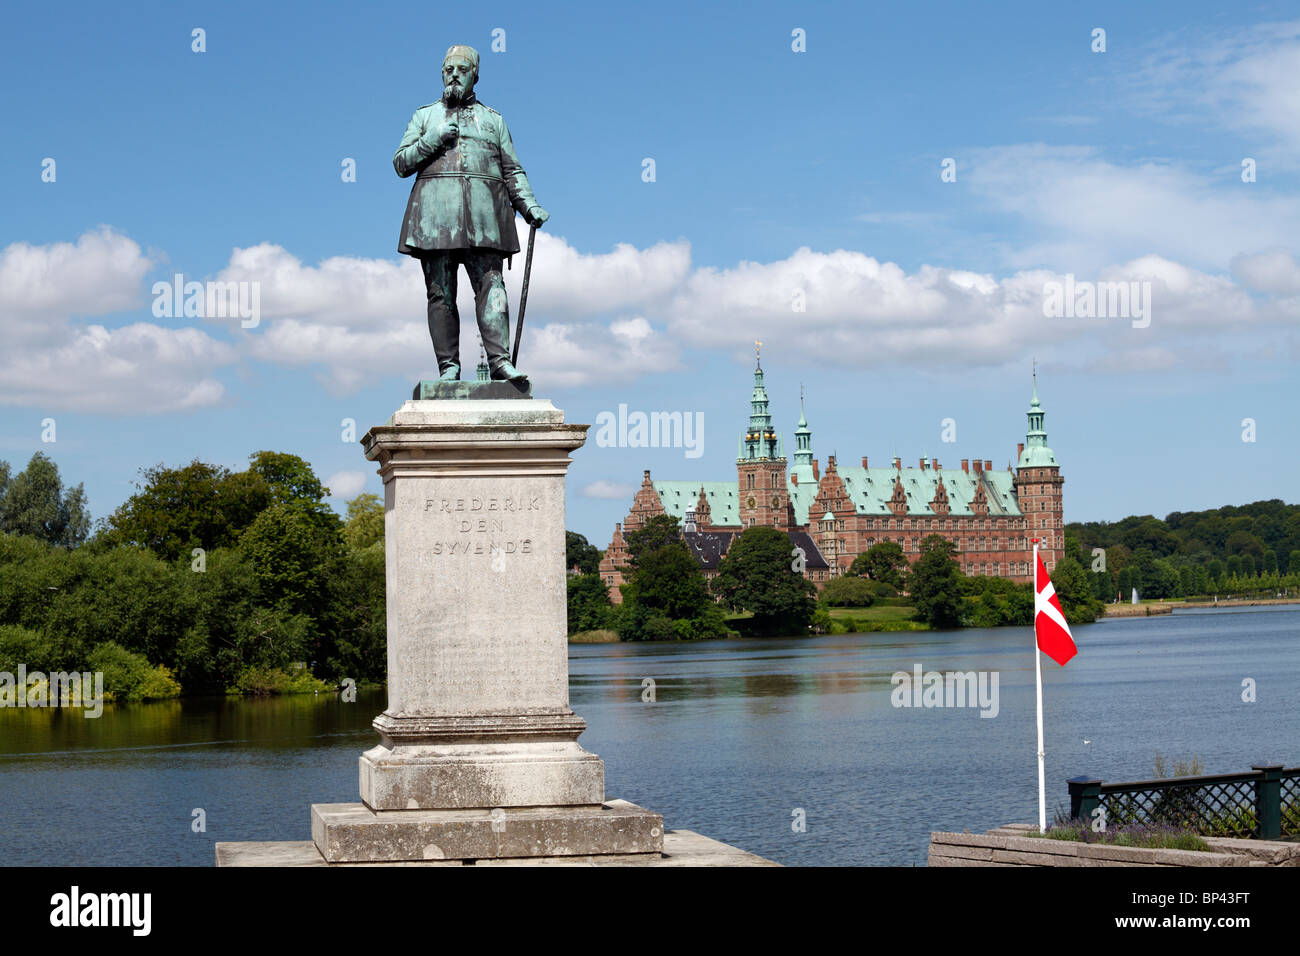 The statue of Frederik the 7th in front of the lake and Frederiksborg Castle in Hillerød near Copenhagen, Denmark. - Stock Image